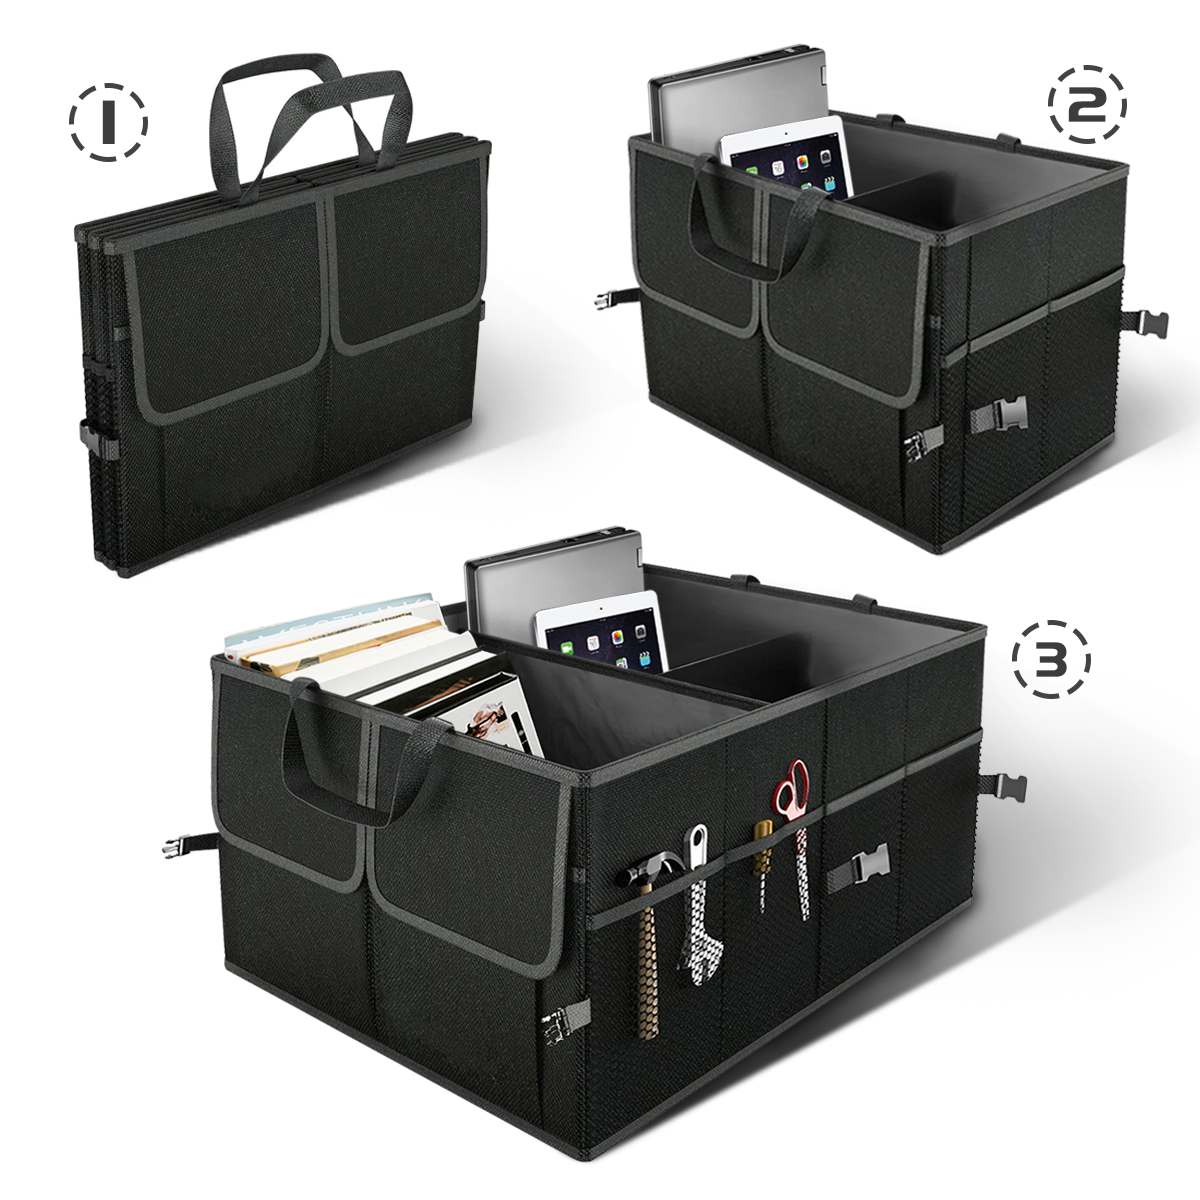 Foldable Car Trunk Storage Bag Box Black Tool Food Toys Goods Organizer Car Auto Interior Luggage Box Stowing Tidying Container